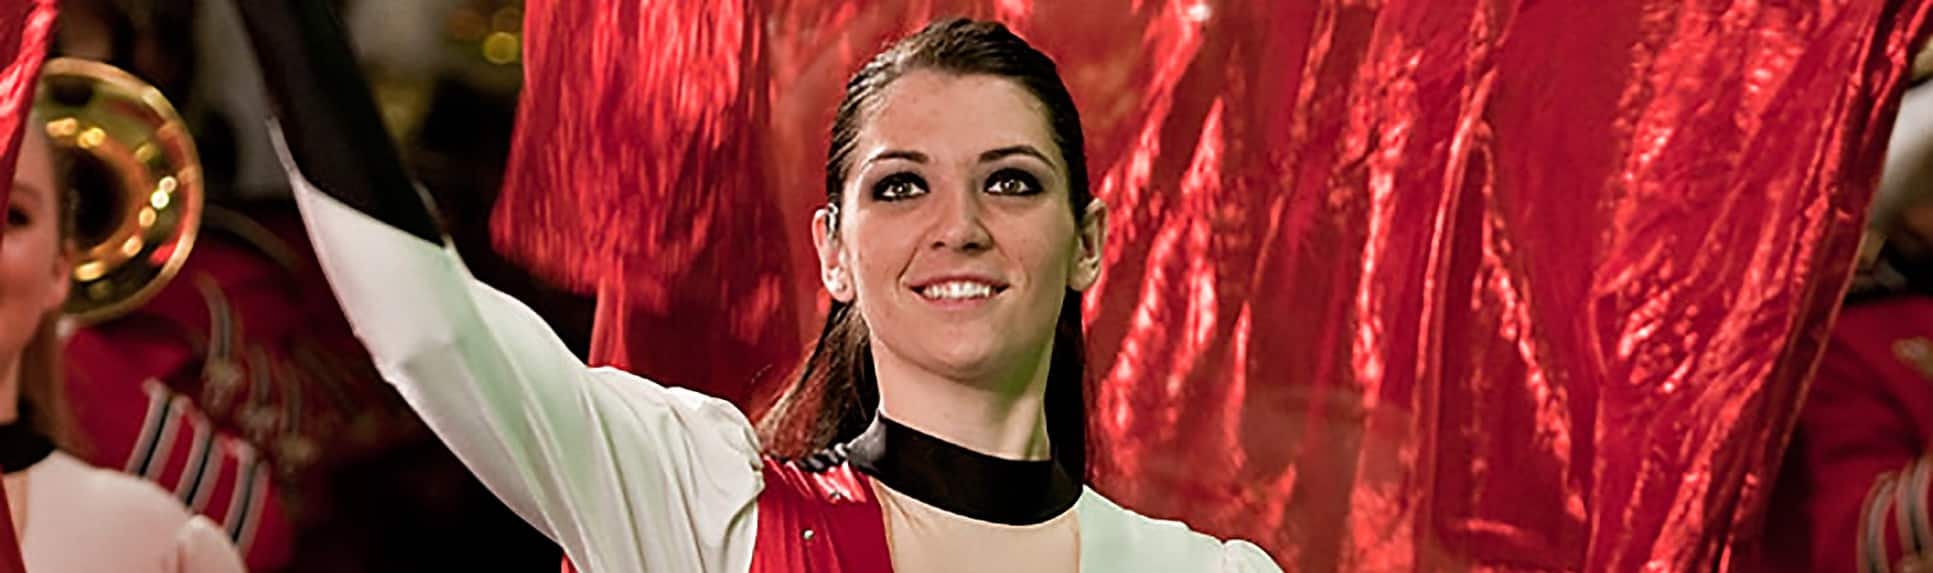 A smiling performer wearing a uniform